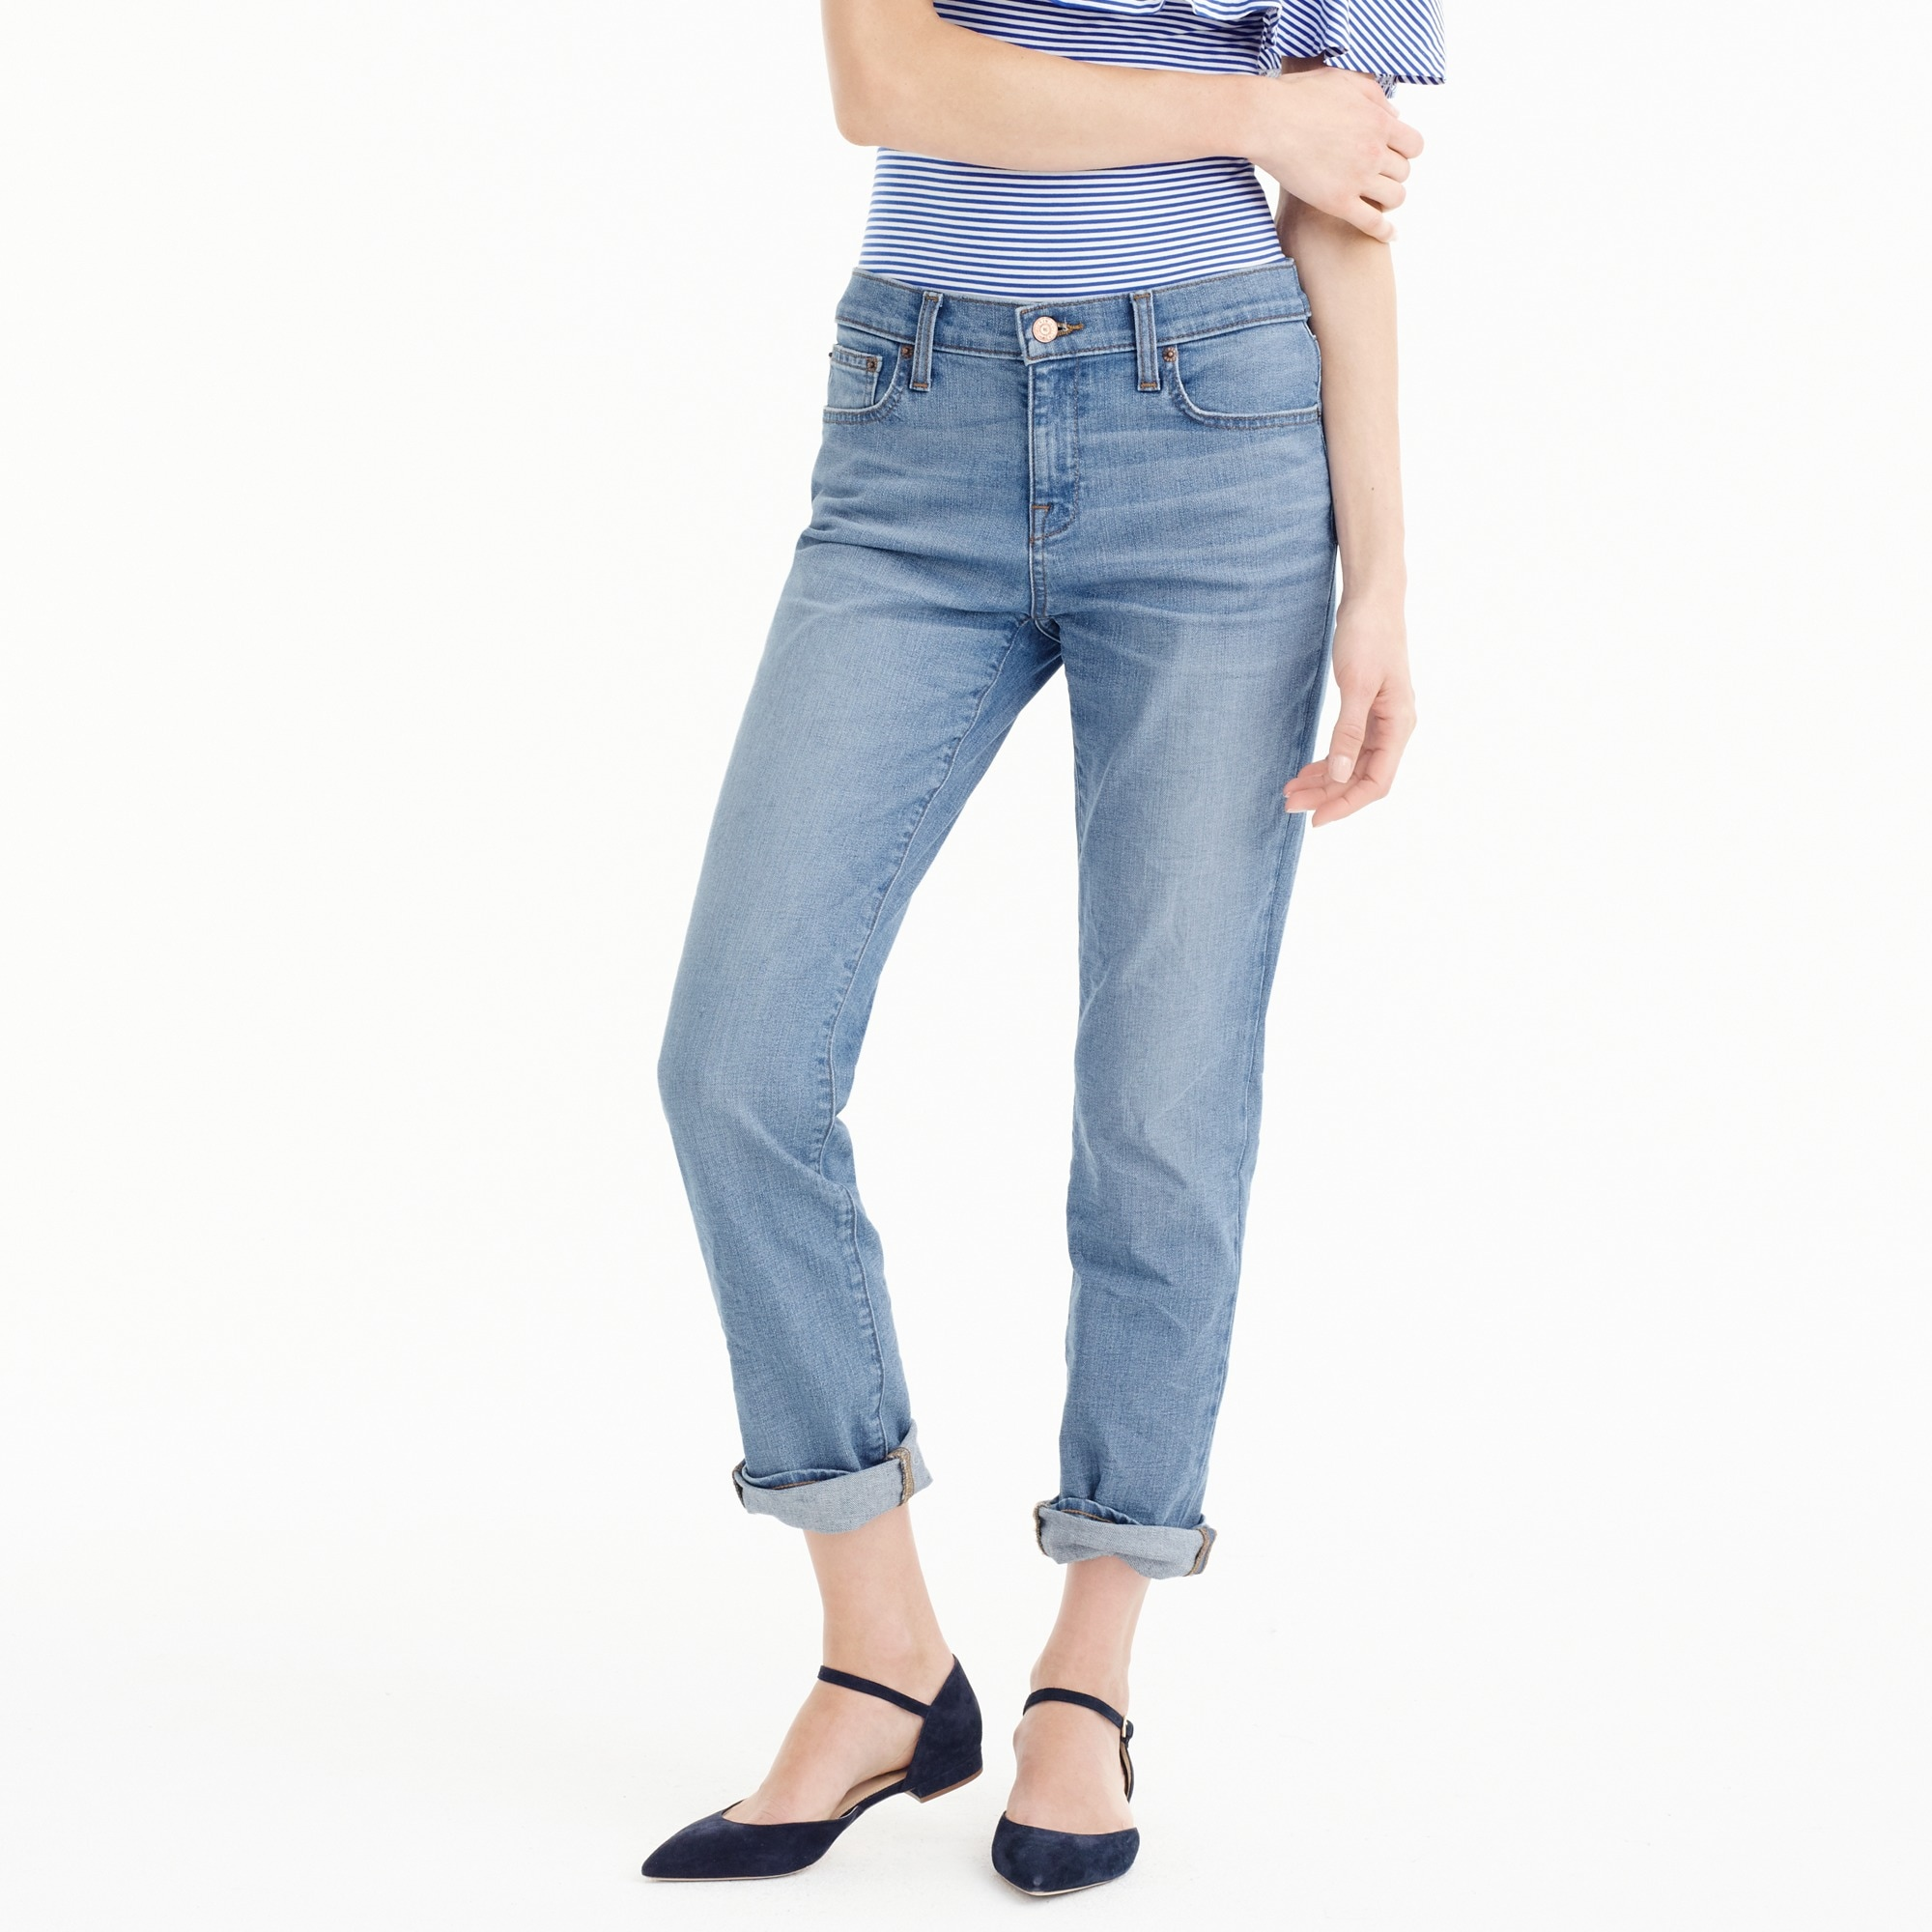 slim boyfriend jean in kellerton wash : women boyfriend